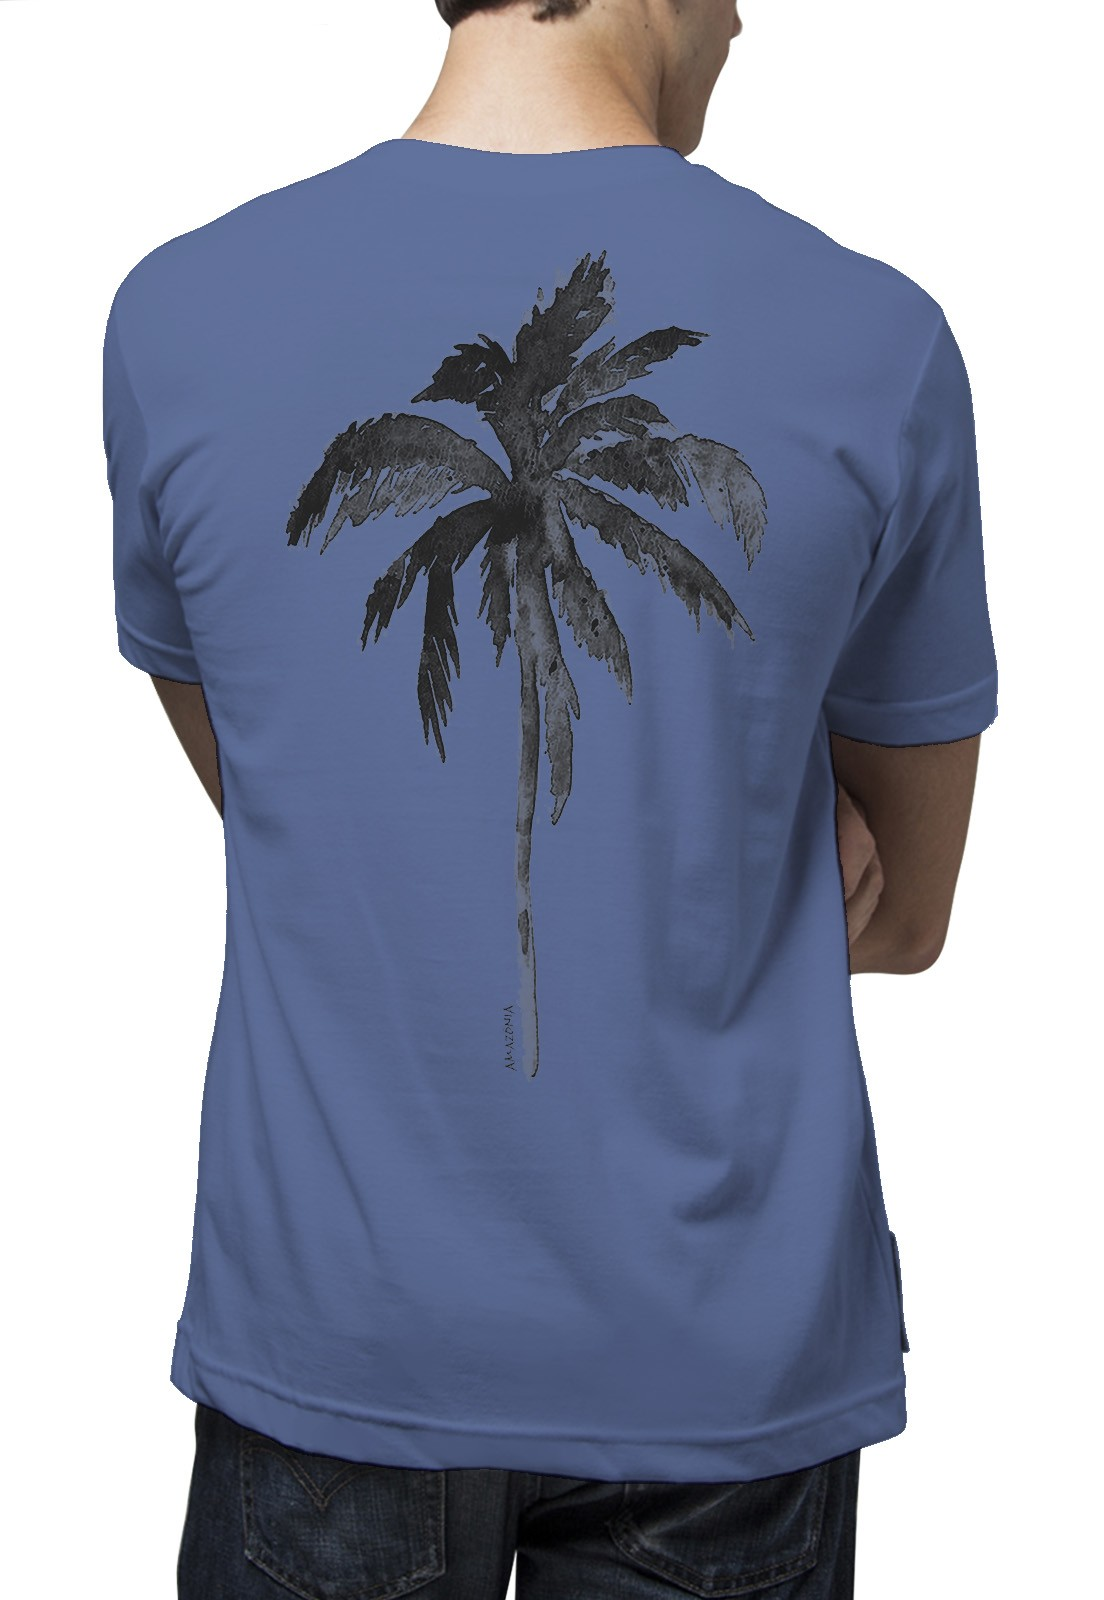 Camiseta Amazônia Tropical - Azul